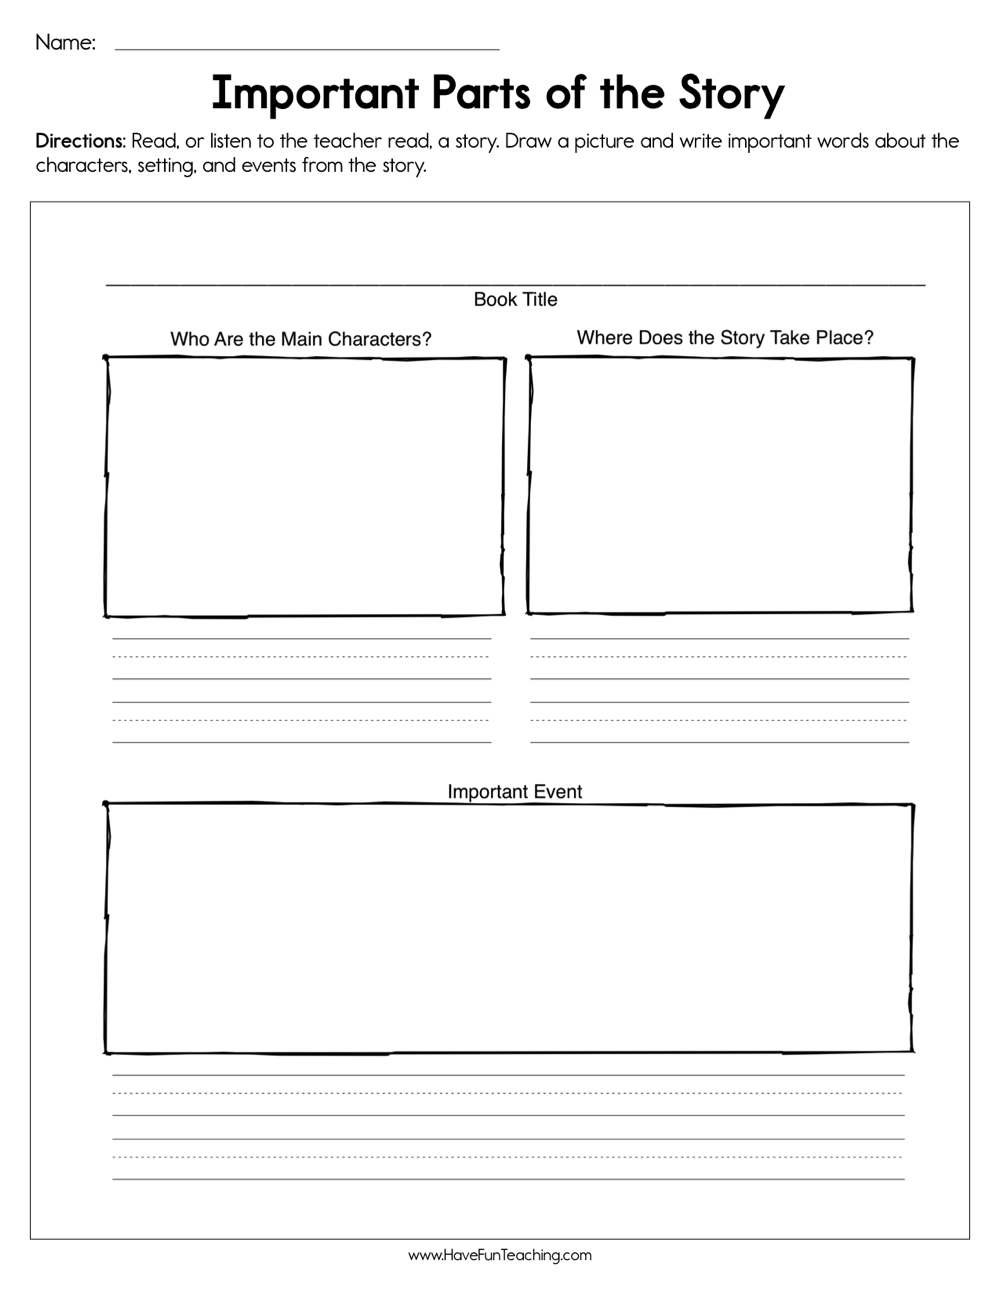 medium resolution of Important Parts of the Story Worksheet • Have Fun Teaching